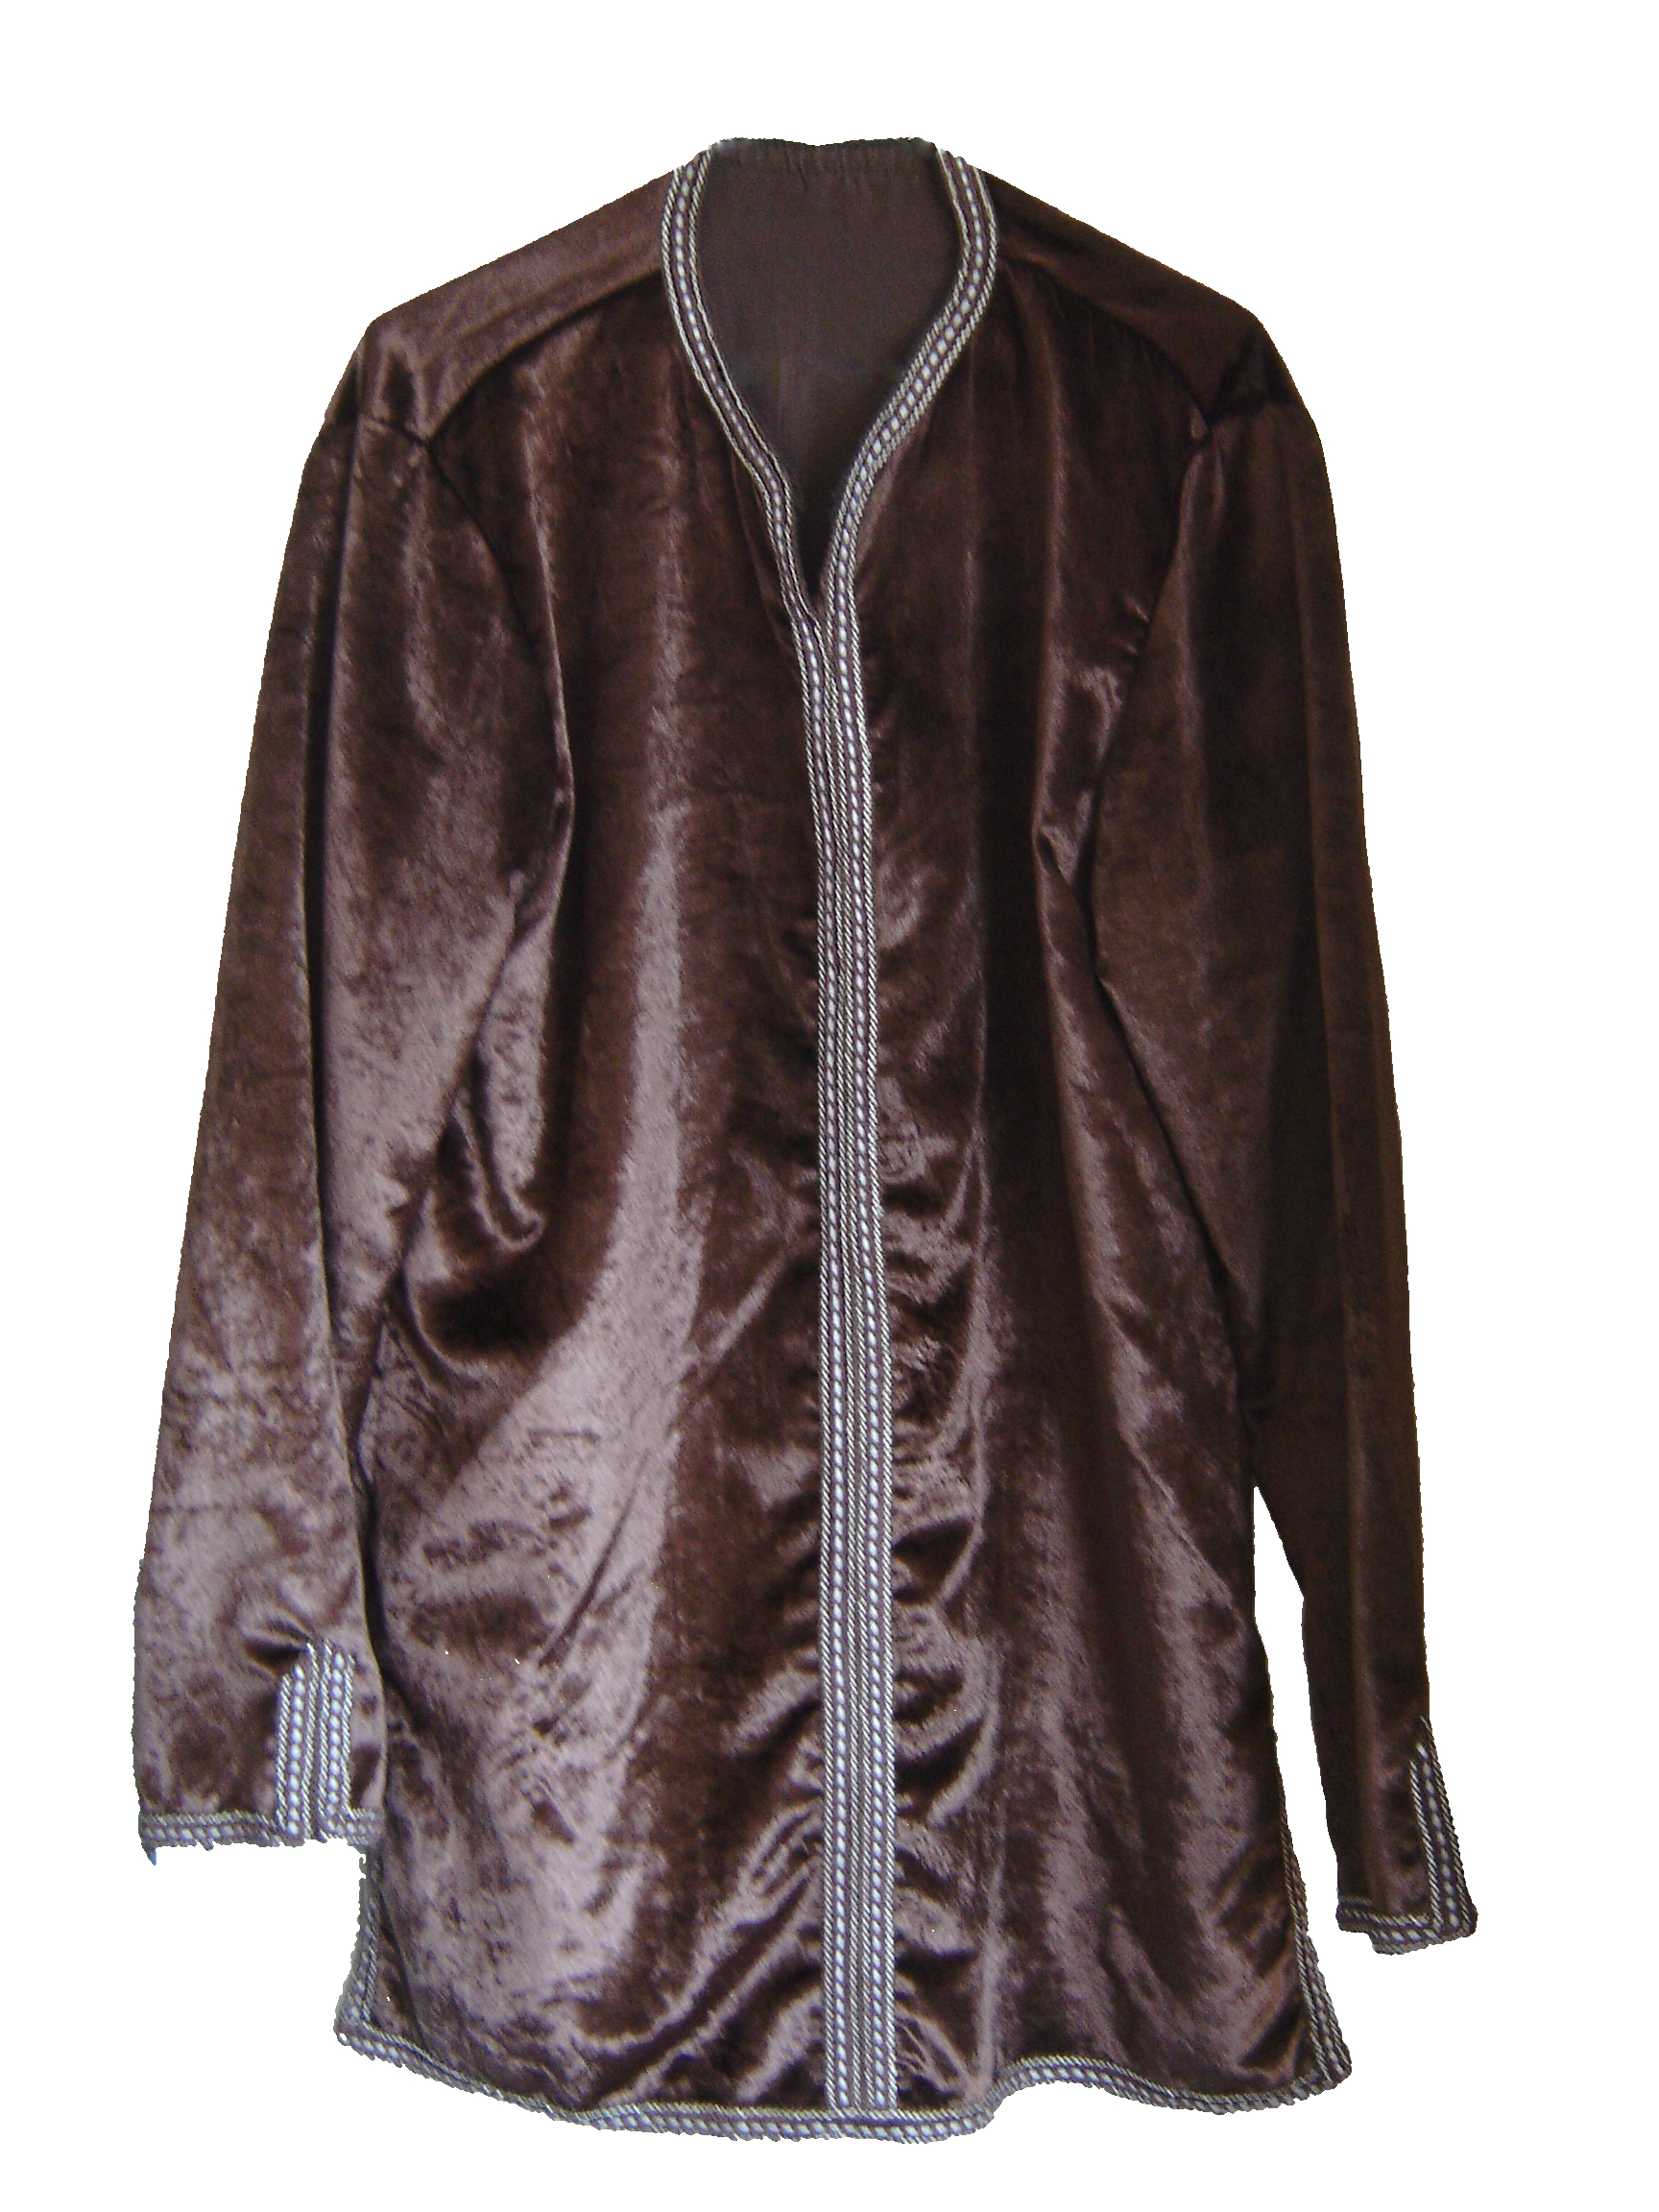 Brown velvet Moroccan shirt, from Fez, 71 Golborne Road, London